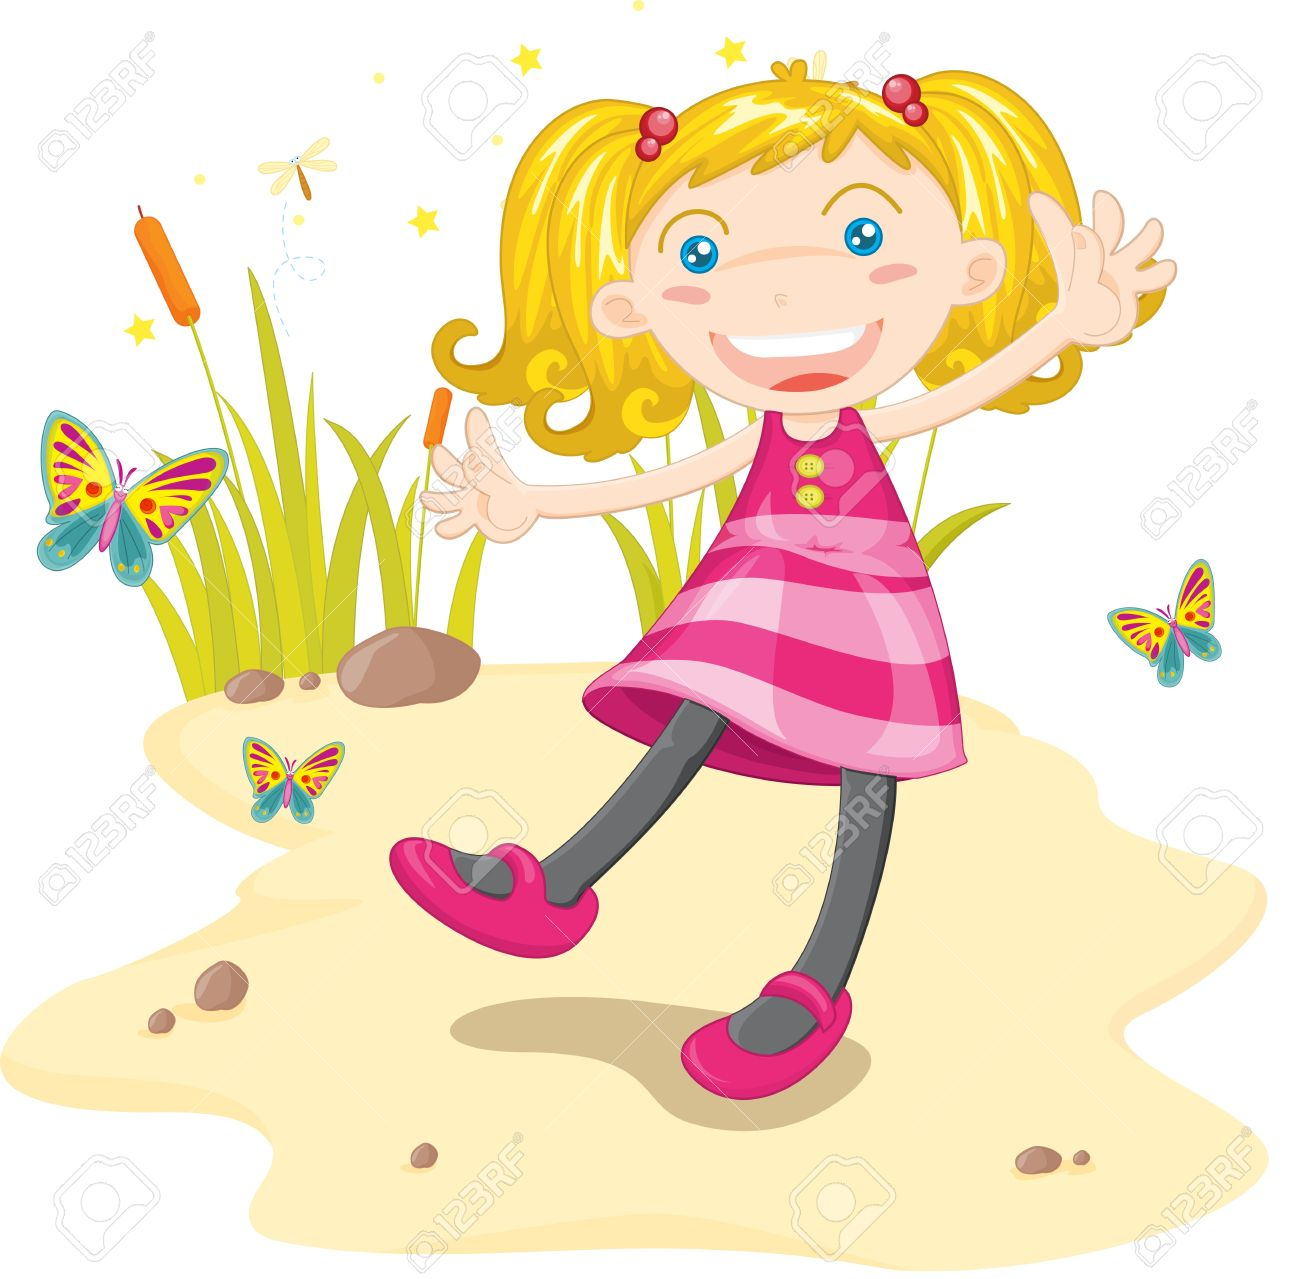 Girl dancing on sand with butterflies Stock Vector - 13215590